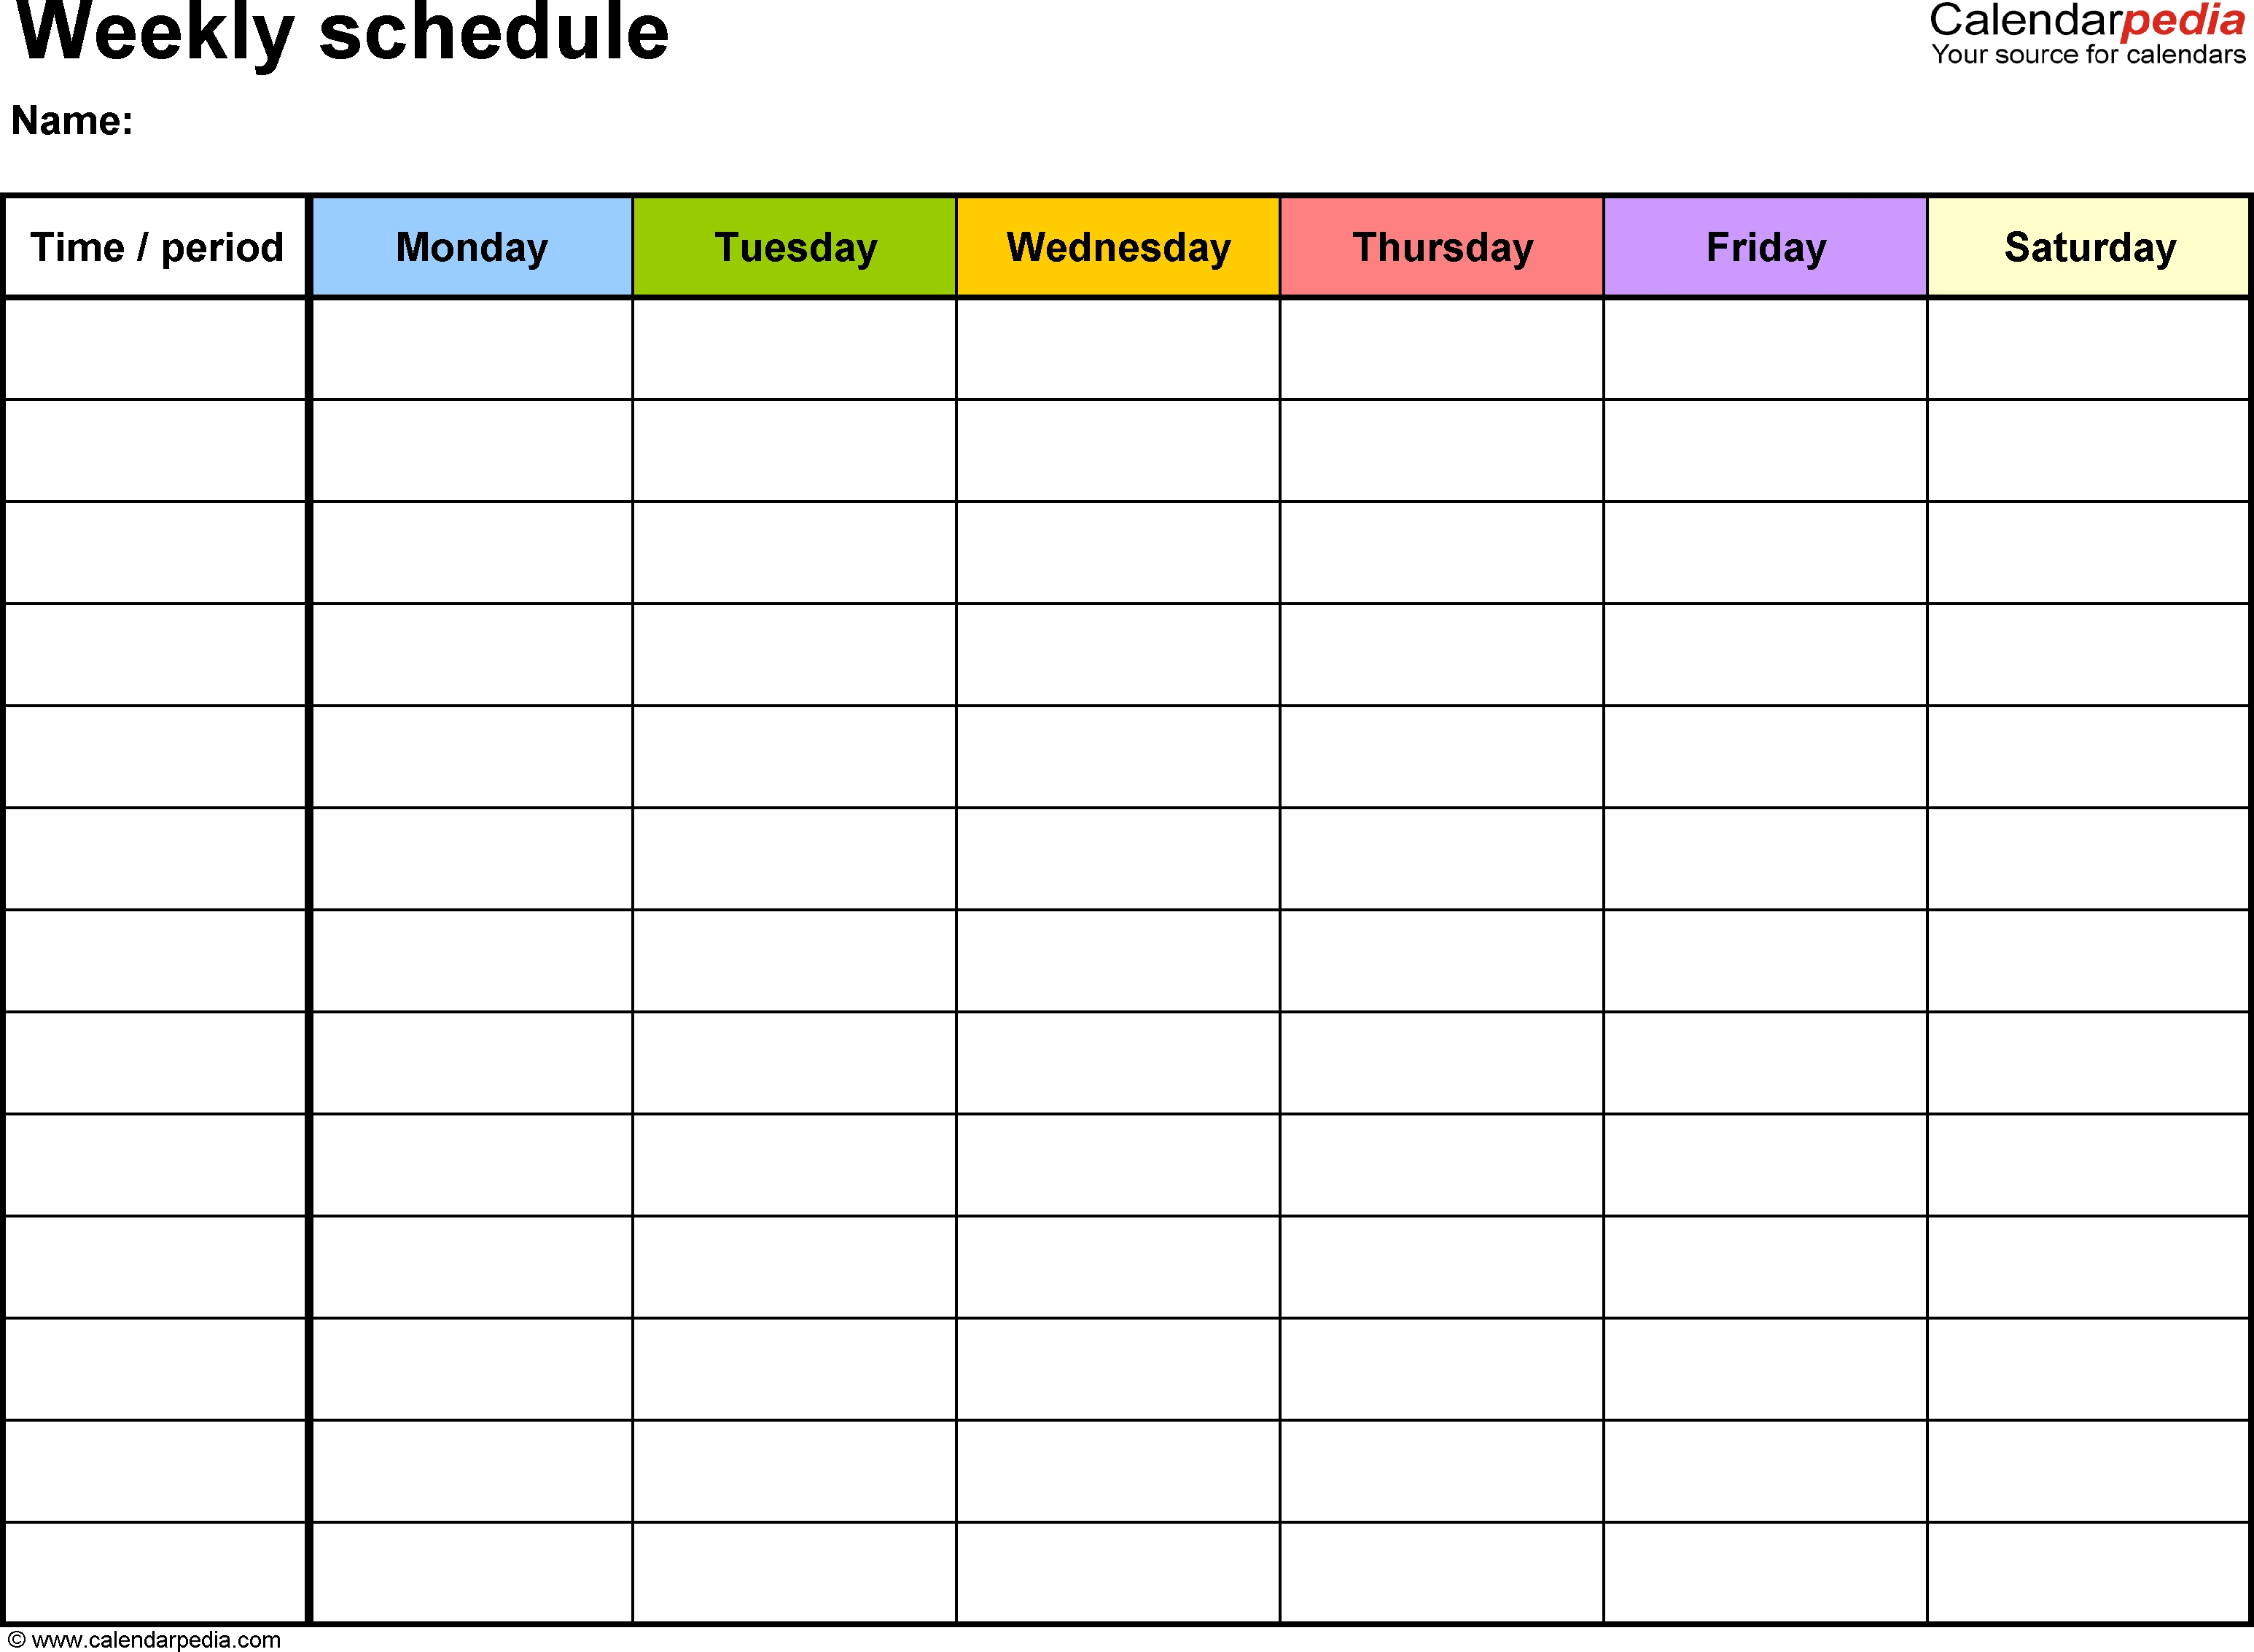 Weekly Schedule Template For Word Version 7: Landscape, 1 for Weekly Planner With Time Slots Word Template